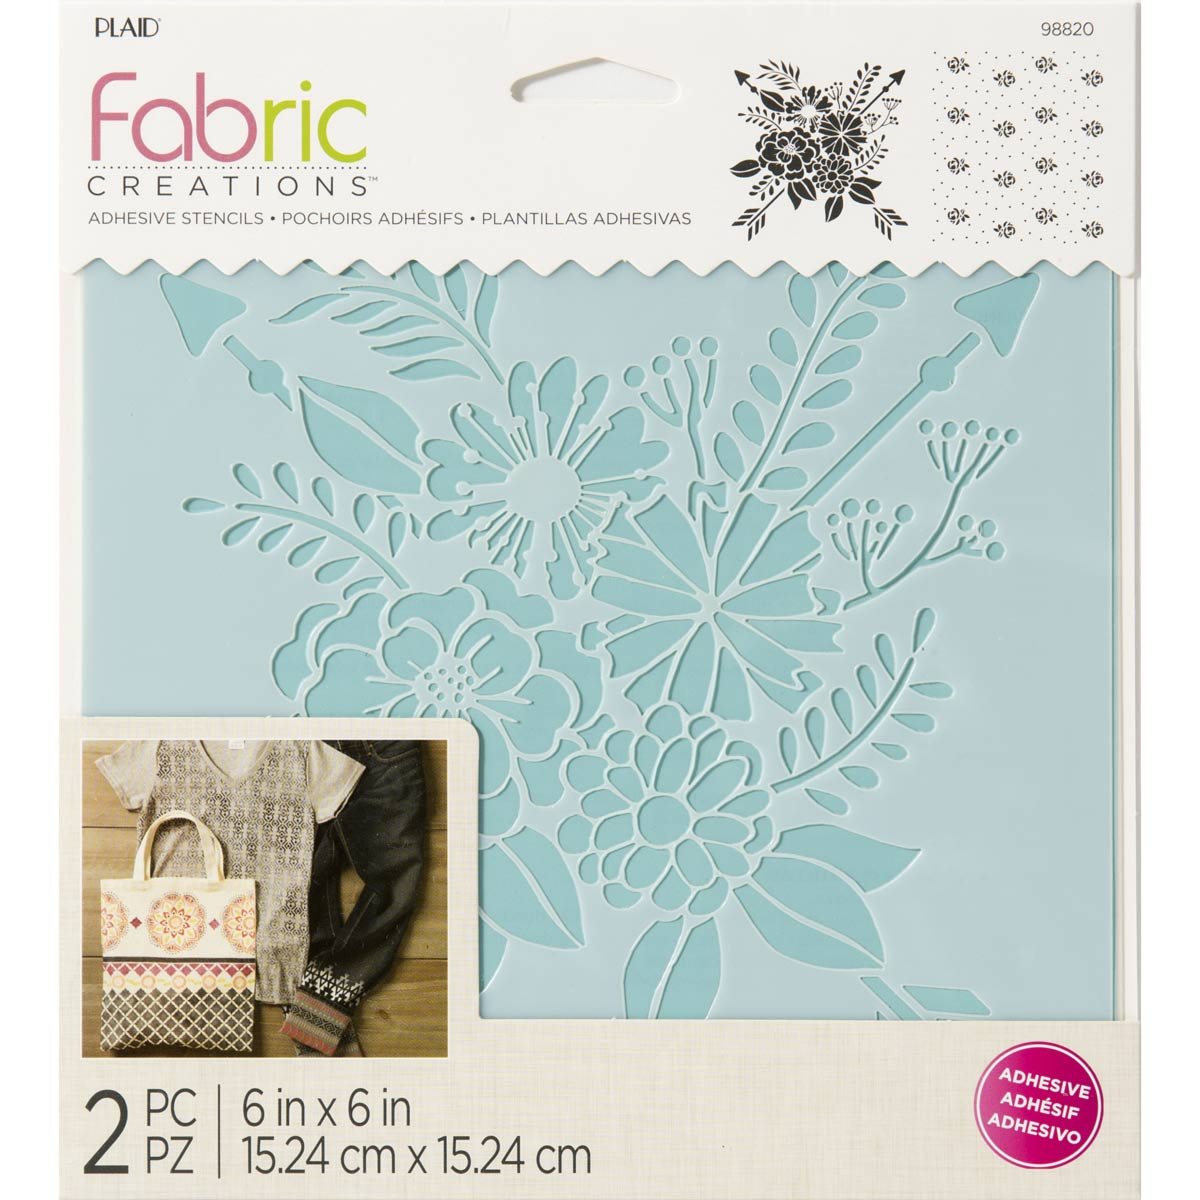 Fabric Creations™ Adhesive Stencils - Floral, 6